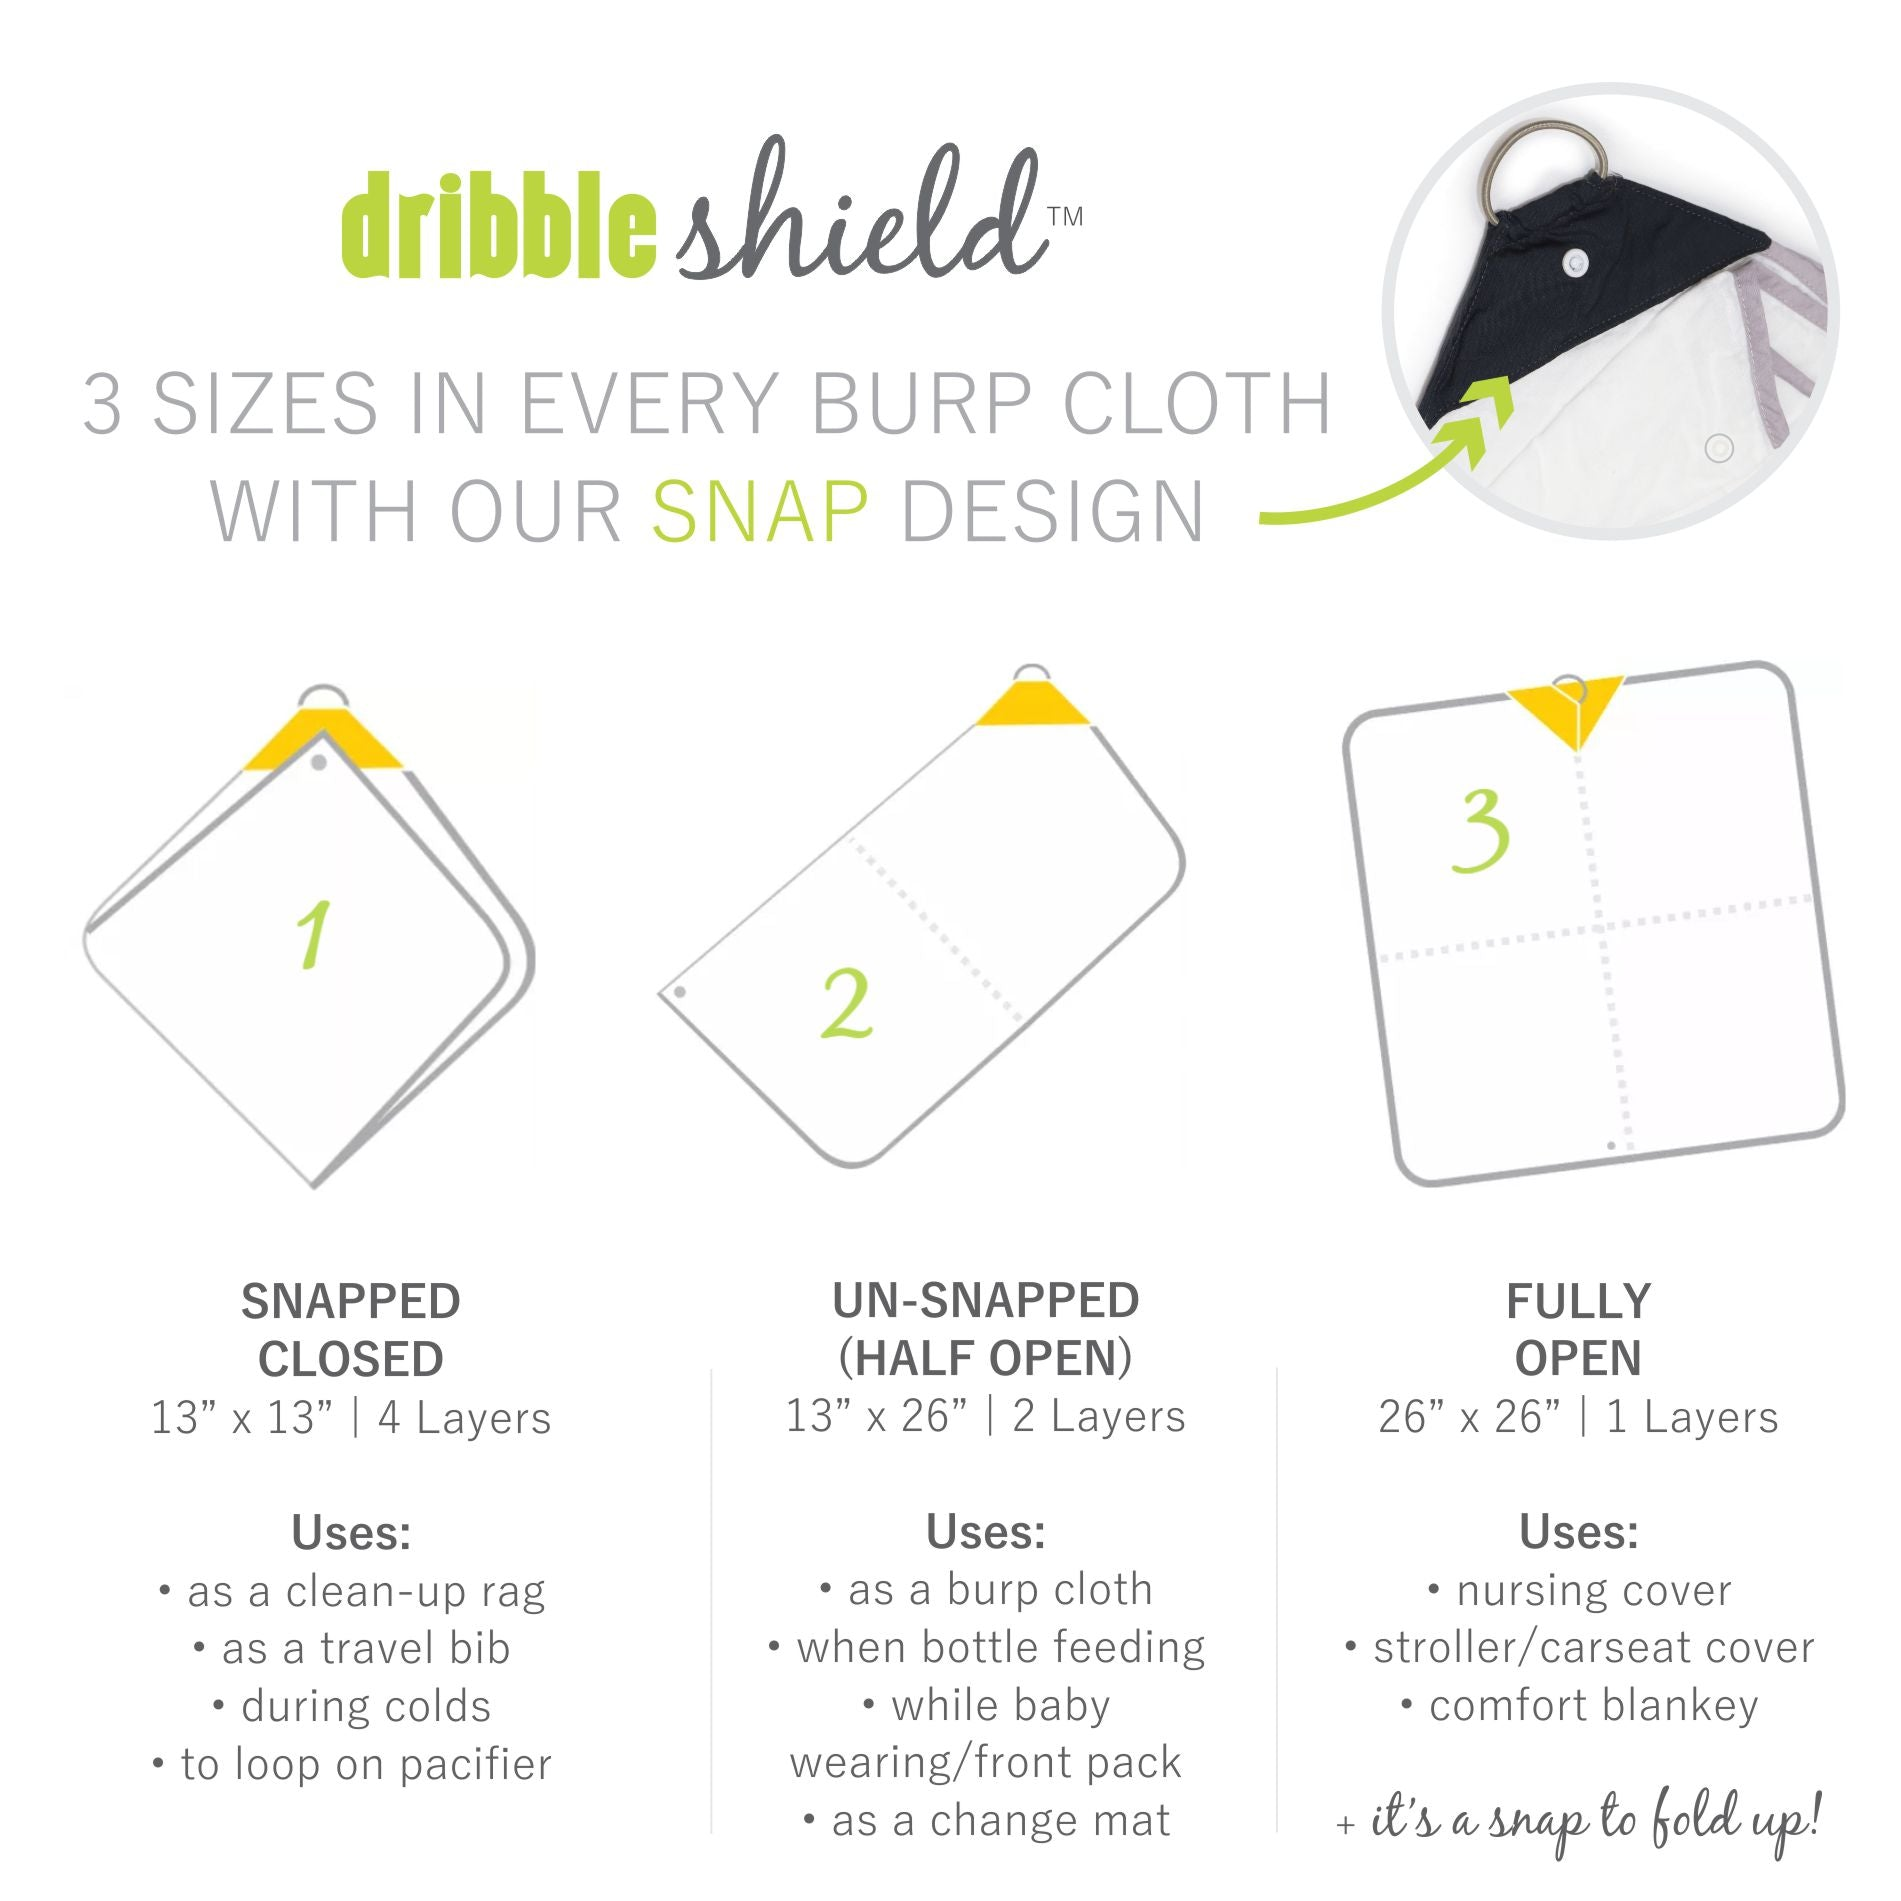 Dribble Shield™ Burp Cloths 4-pack Gift Set in Enchanted